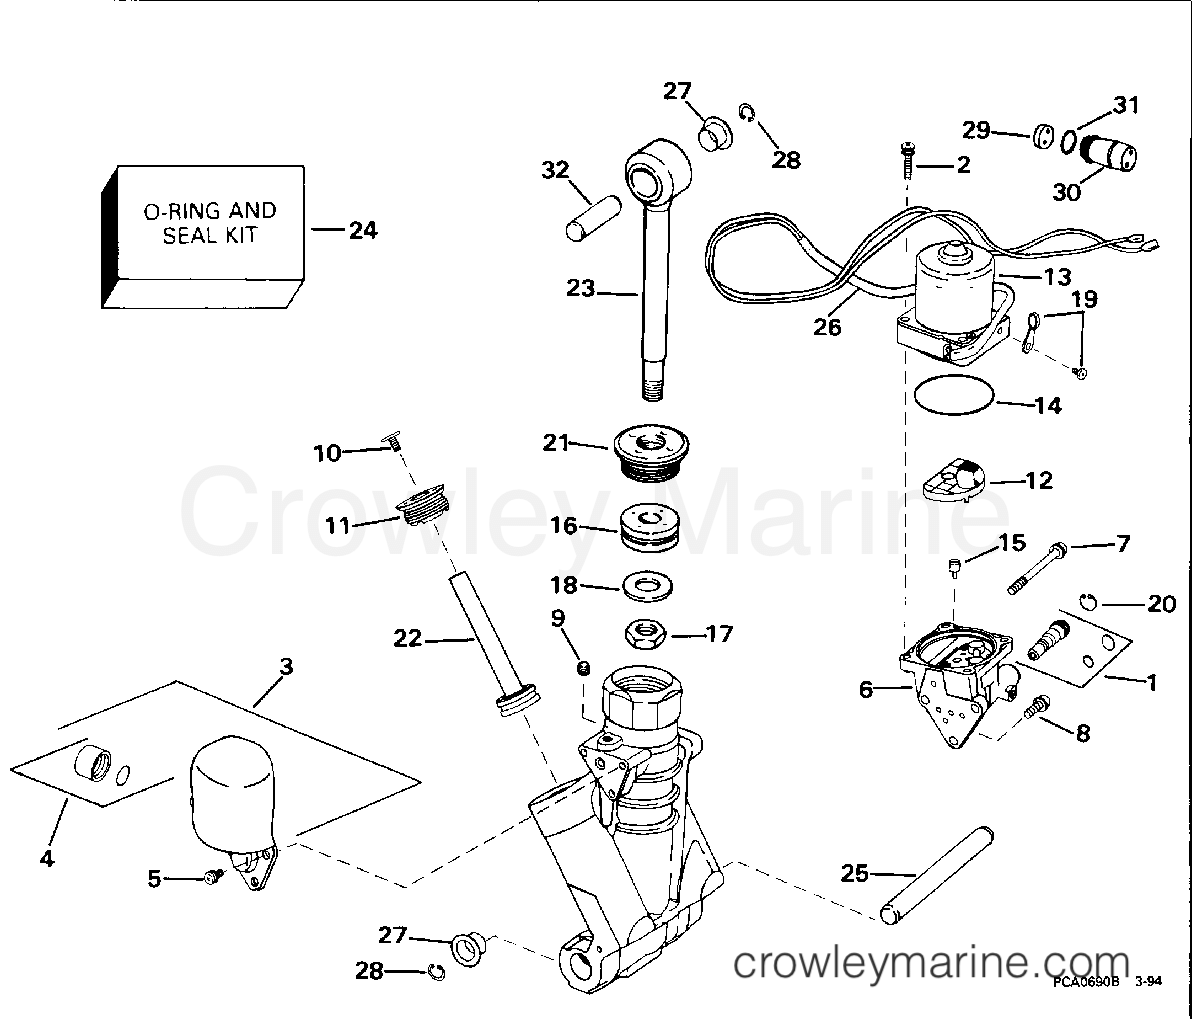 Omc Trim Tilt System Diagram Trusted Wiring Evinrude Schematics 85 Hp 1977 Power Hydraulic Assembly 1994 Outboards 60